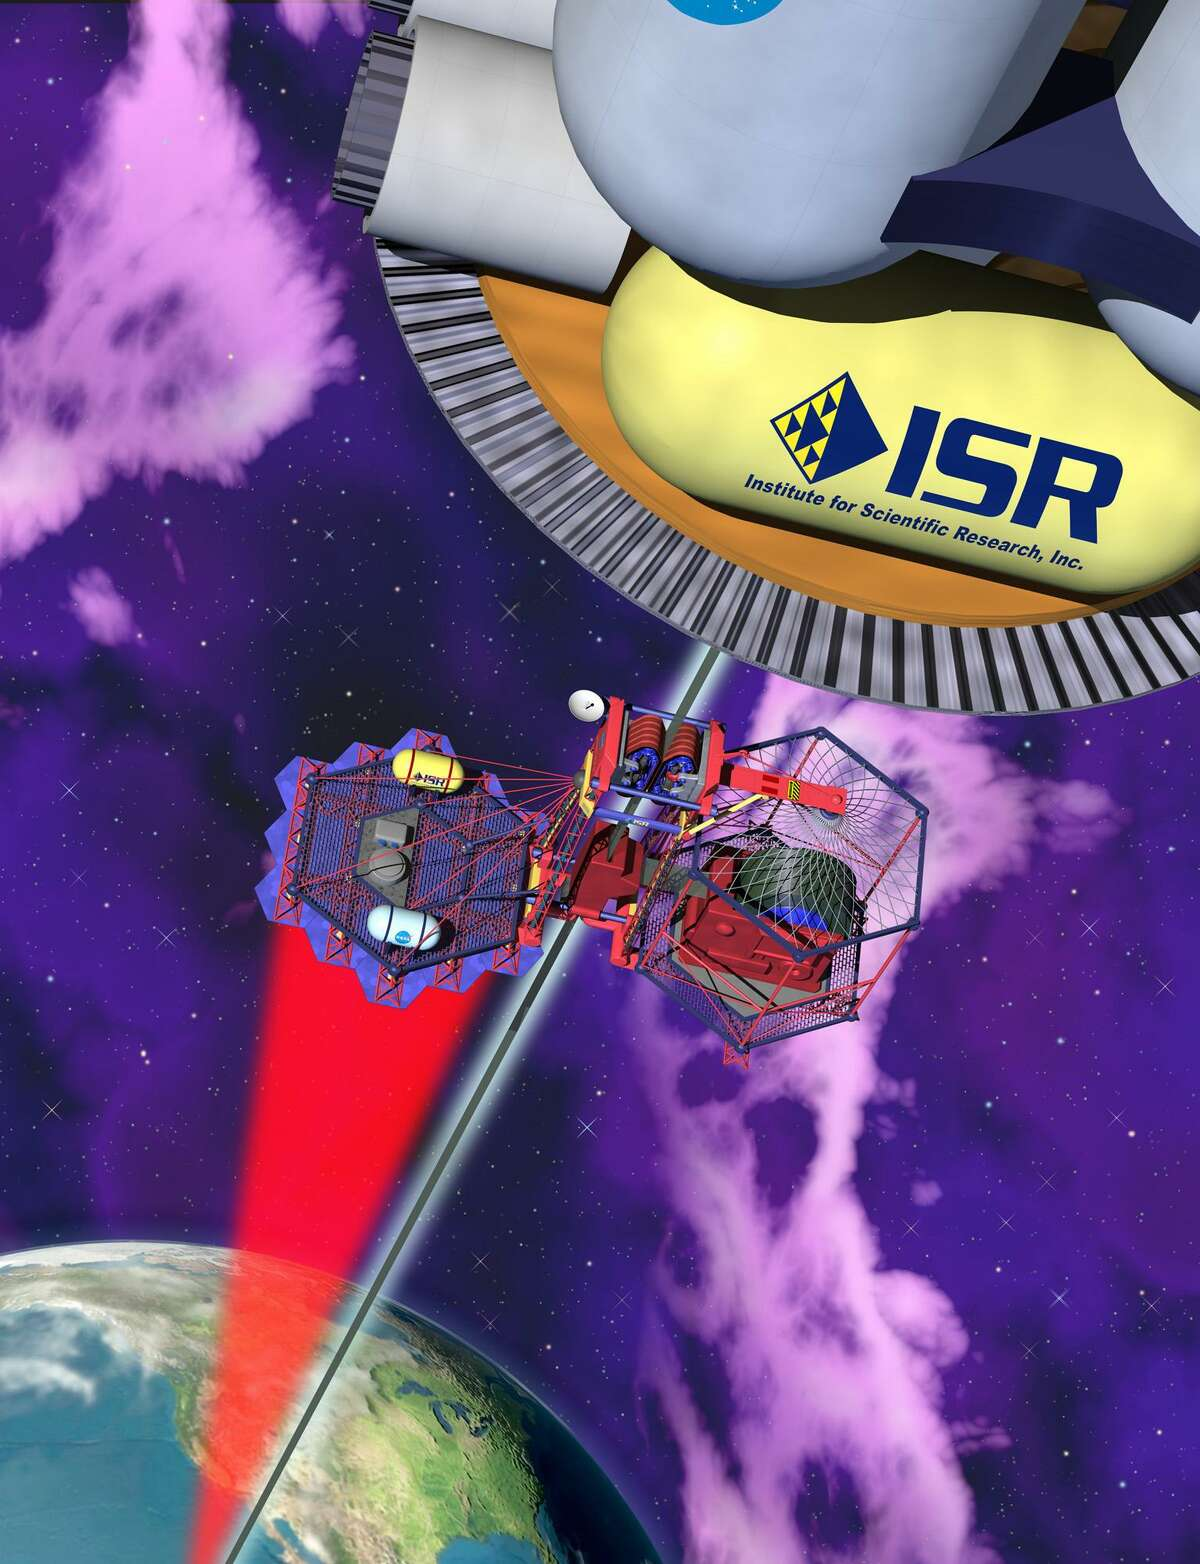 An artist rendering of the proposed space elevator is shown in this undated image released by the Institute for Scientific Research.